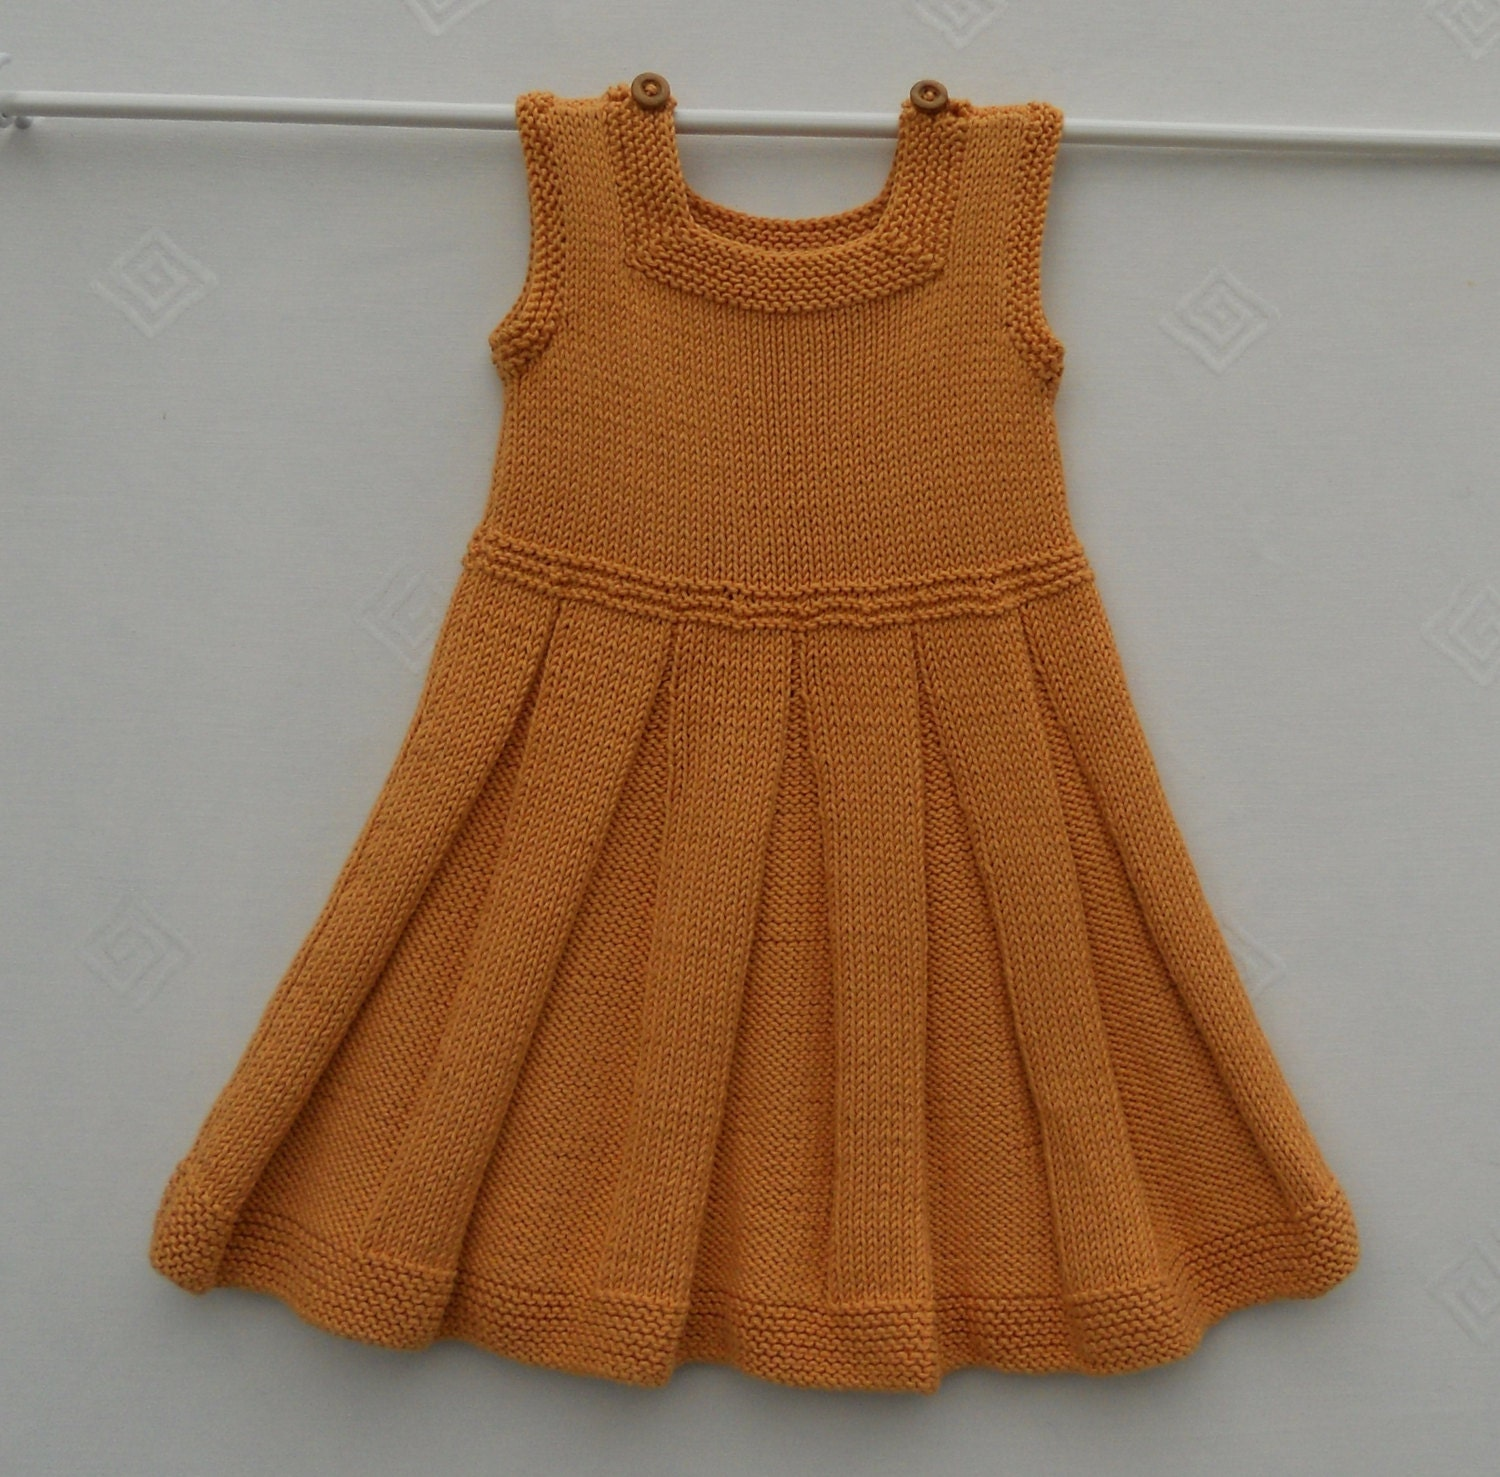 Knitting Dress For Girl : Baby girl toddler dress or pinafore hand knitted in by